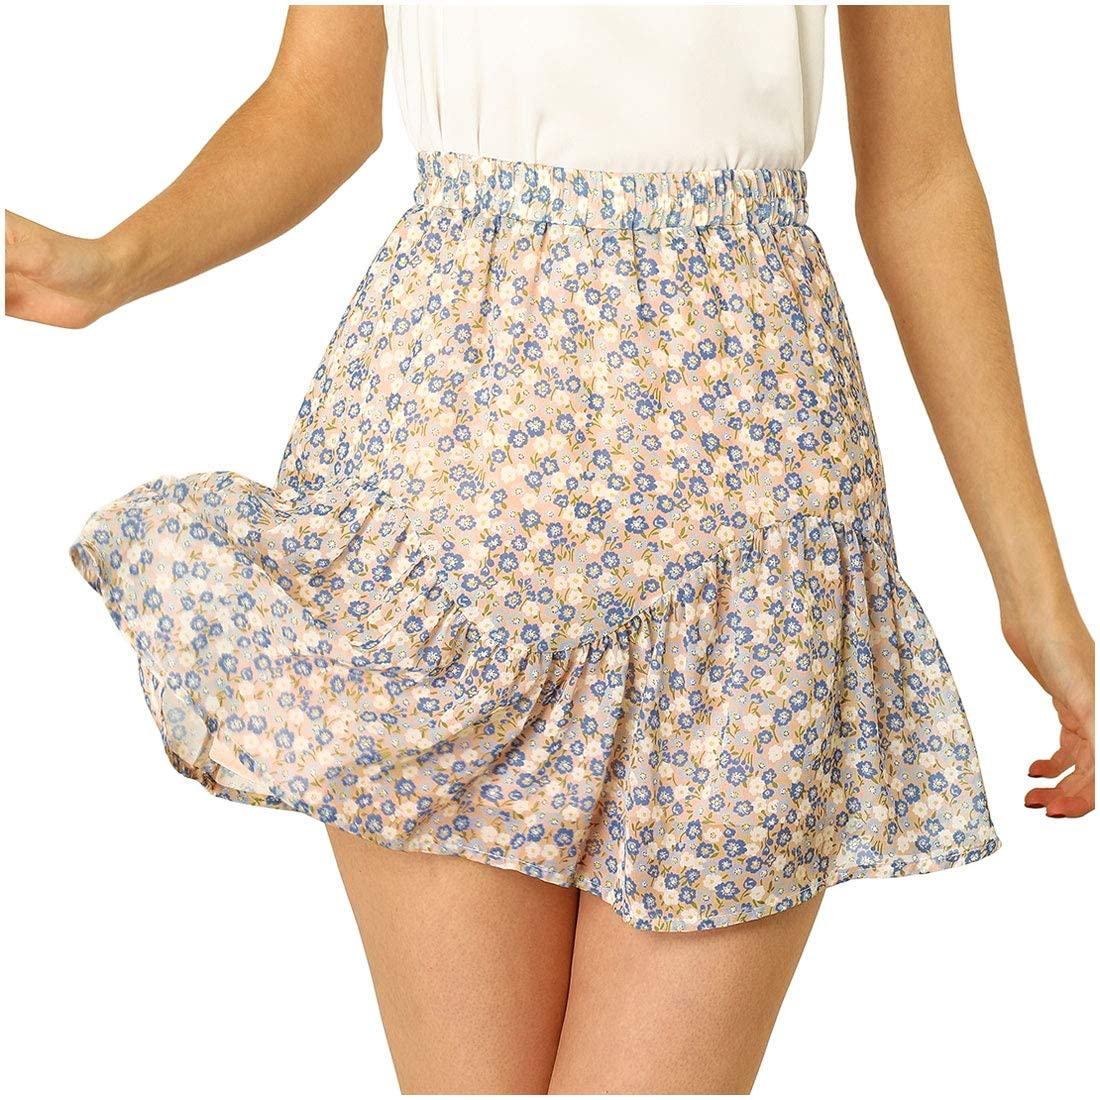 Allegra K Women's Ditsy Floral Ruffle Skirt A-Line High Waisted Short Mini Skirts